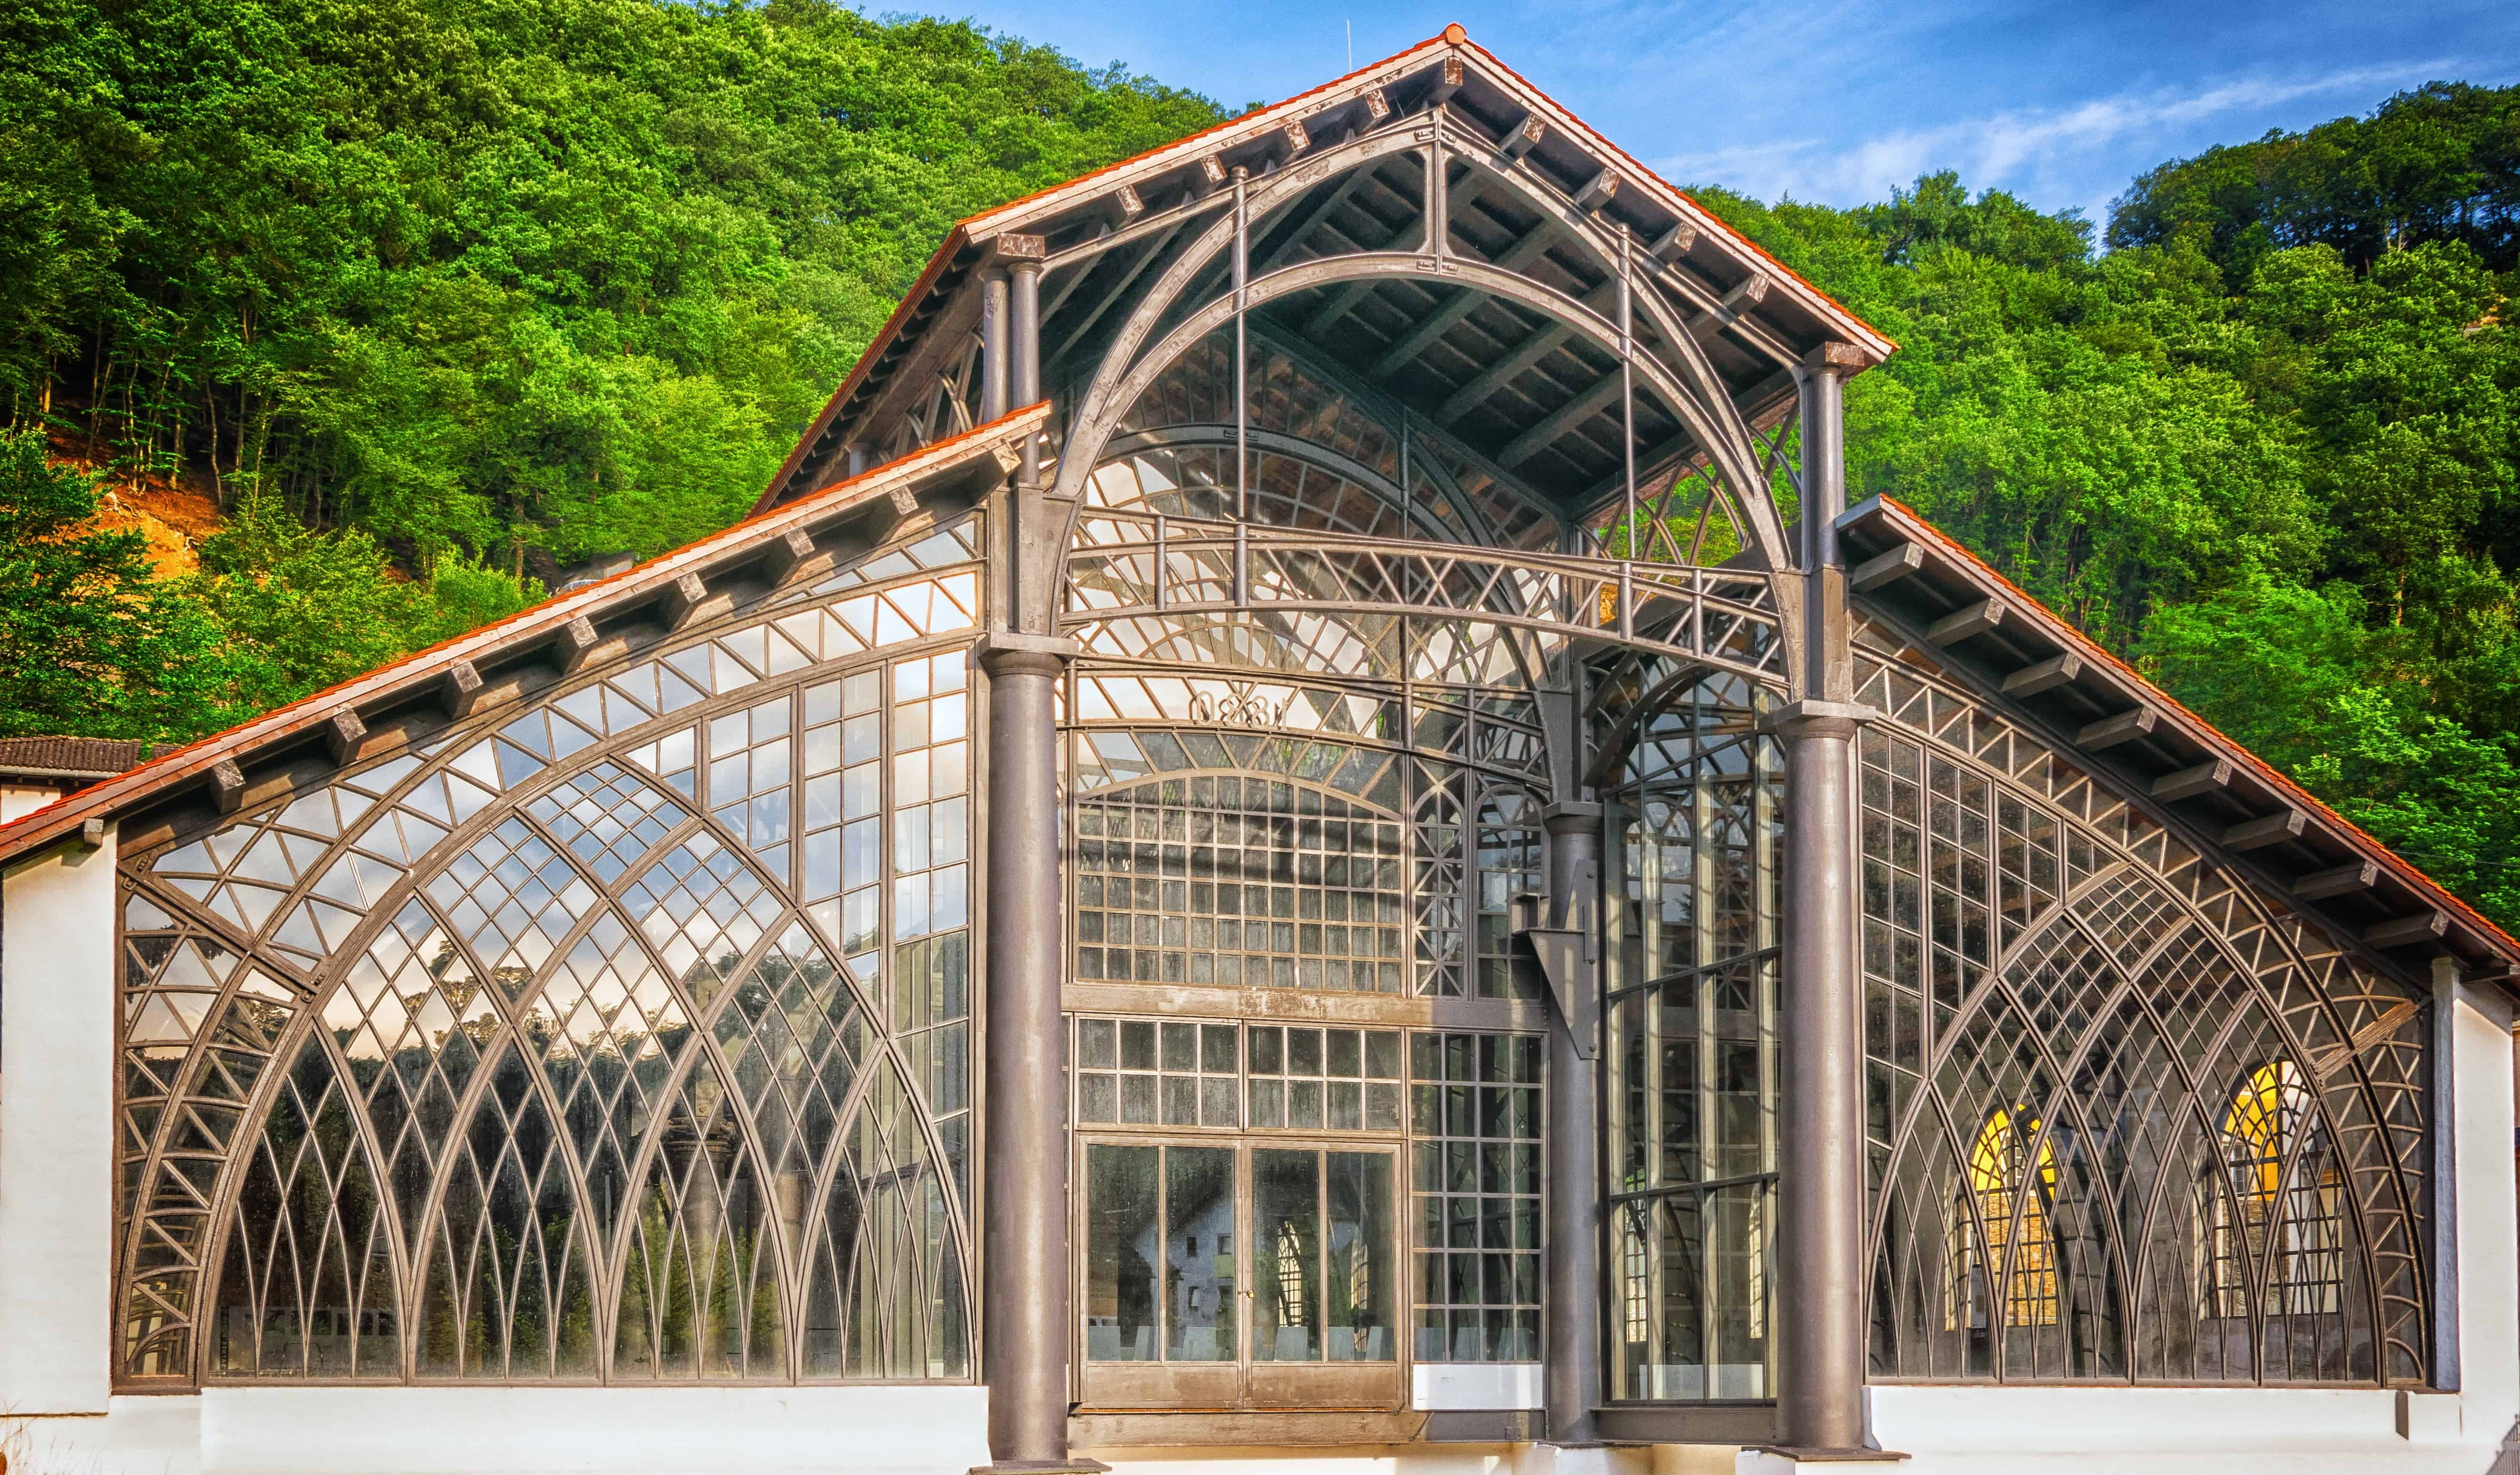 Free picture glass steel construction architecture structure exterior